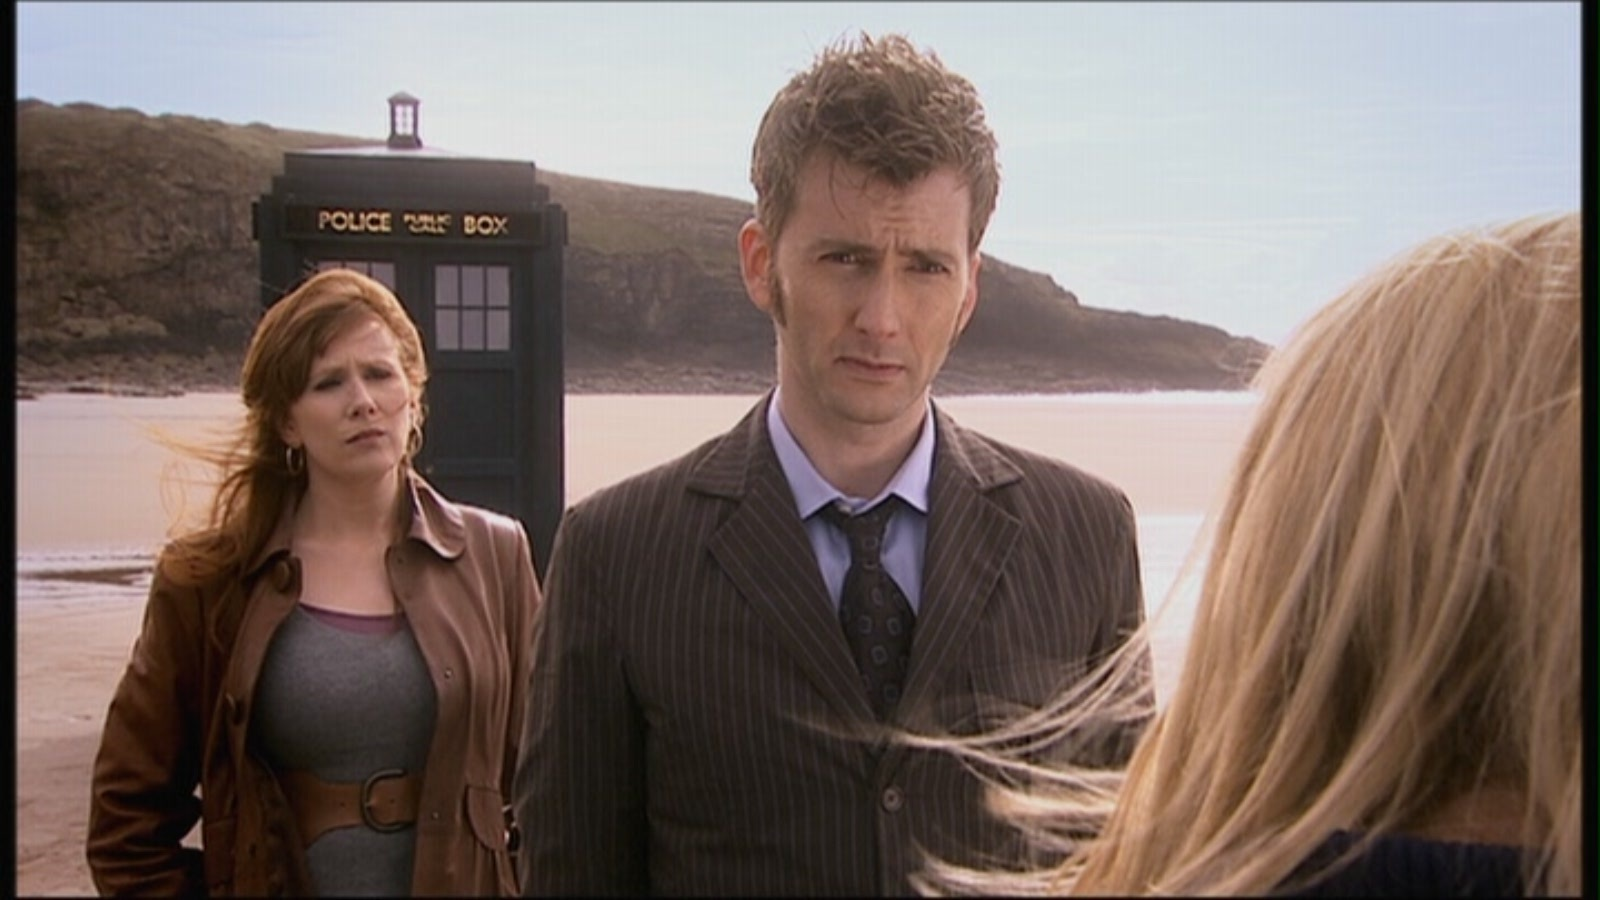 4x13 Journey's End - Doctor Who Image (21331146) - Fanpop